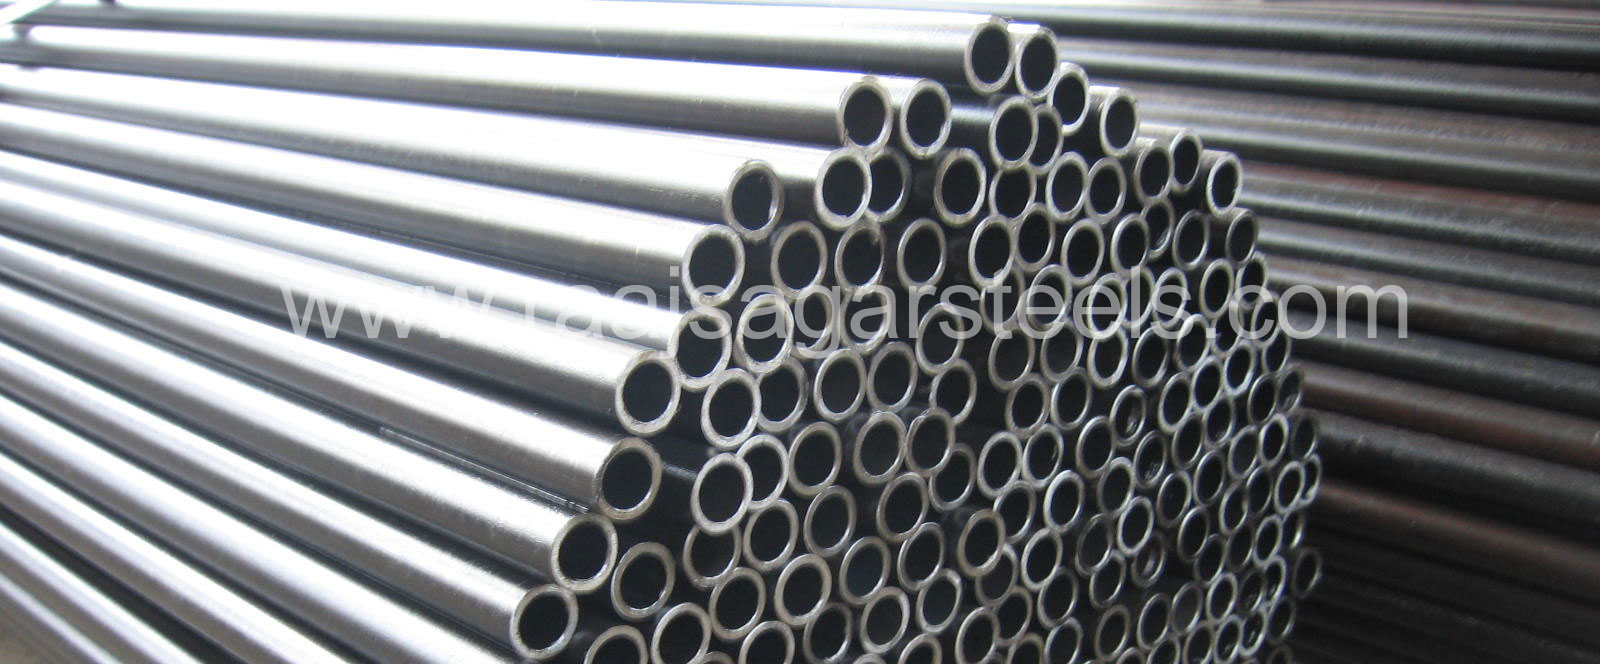 SS 321: 321 tube and 321 ss seamless aerospace tubing